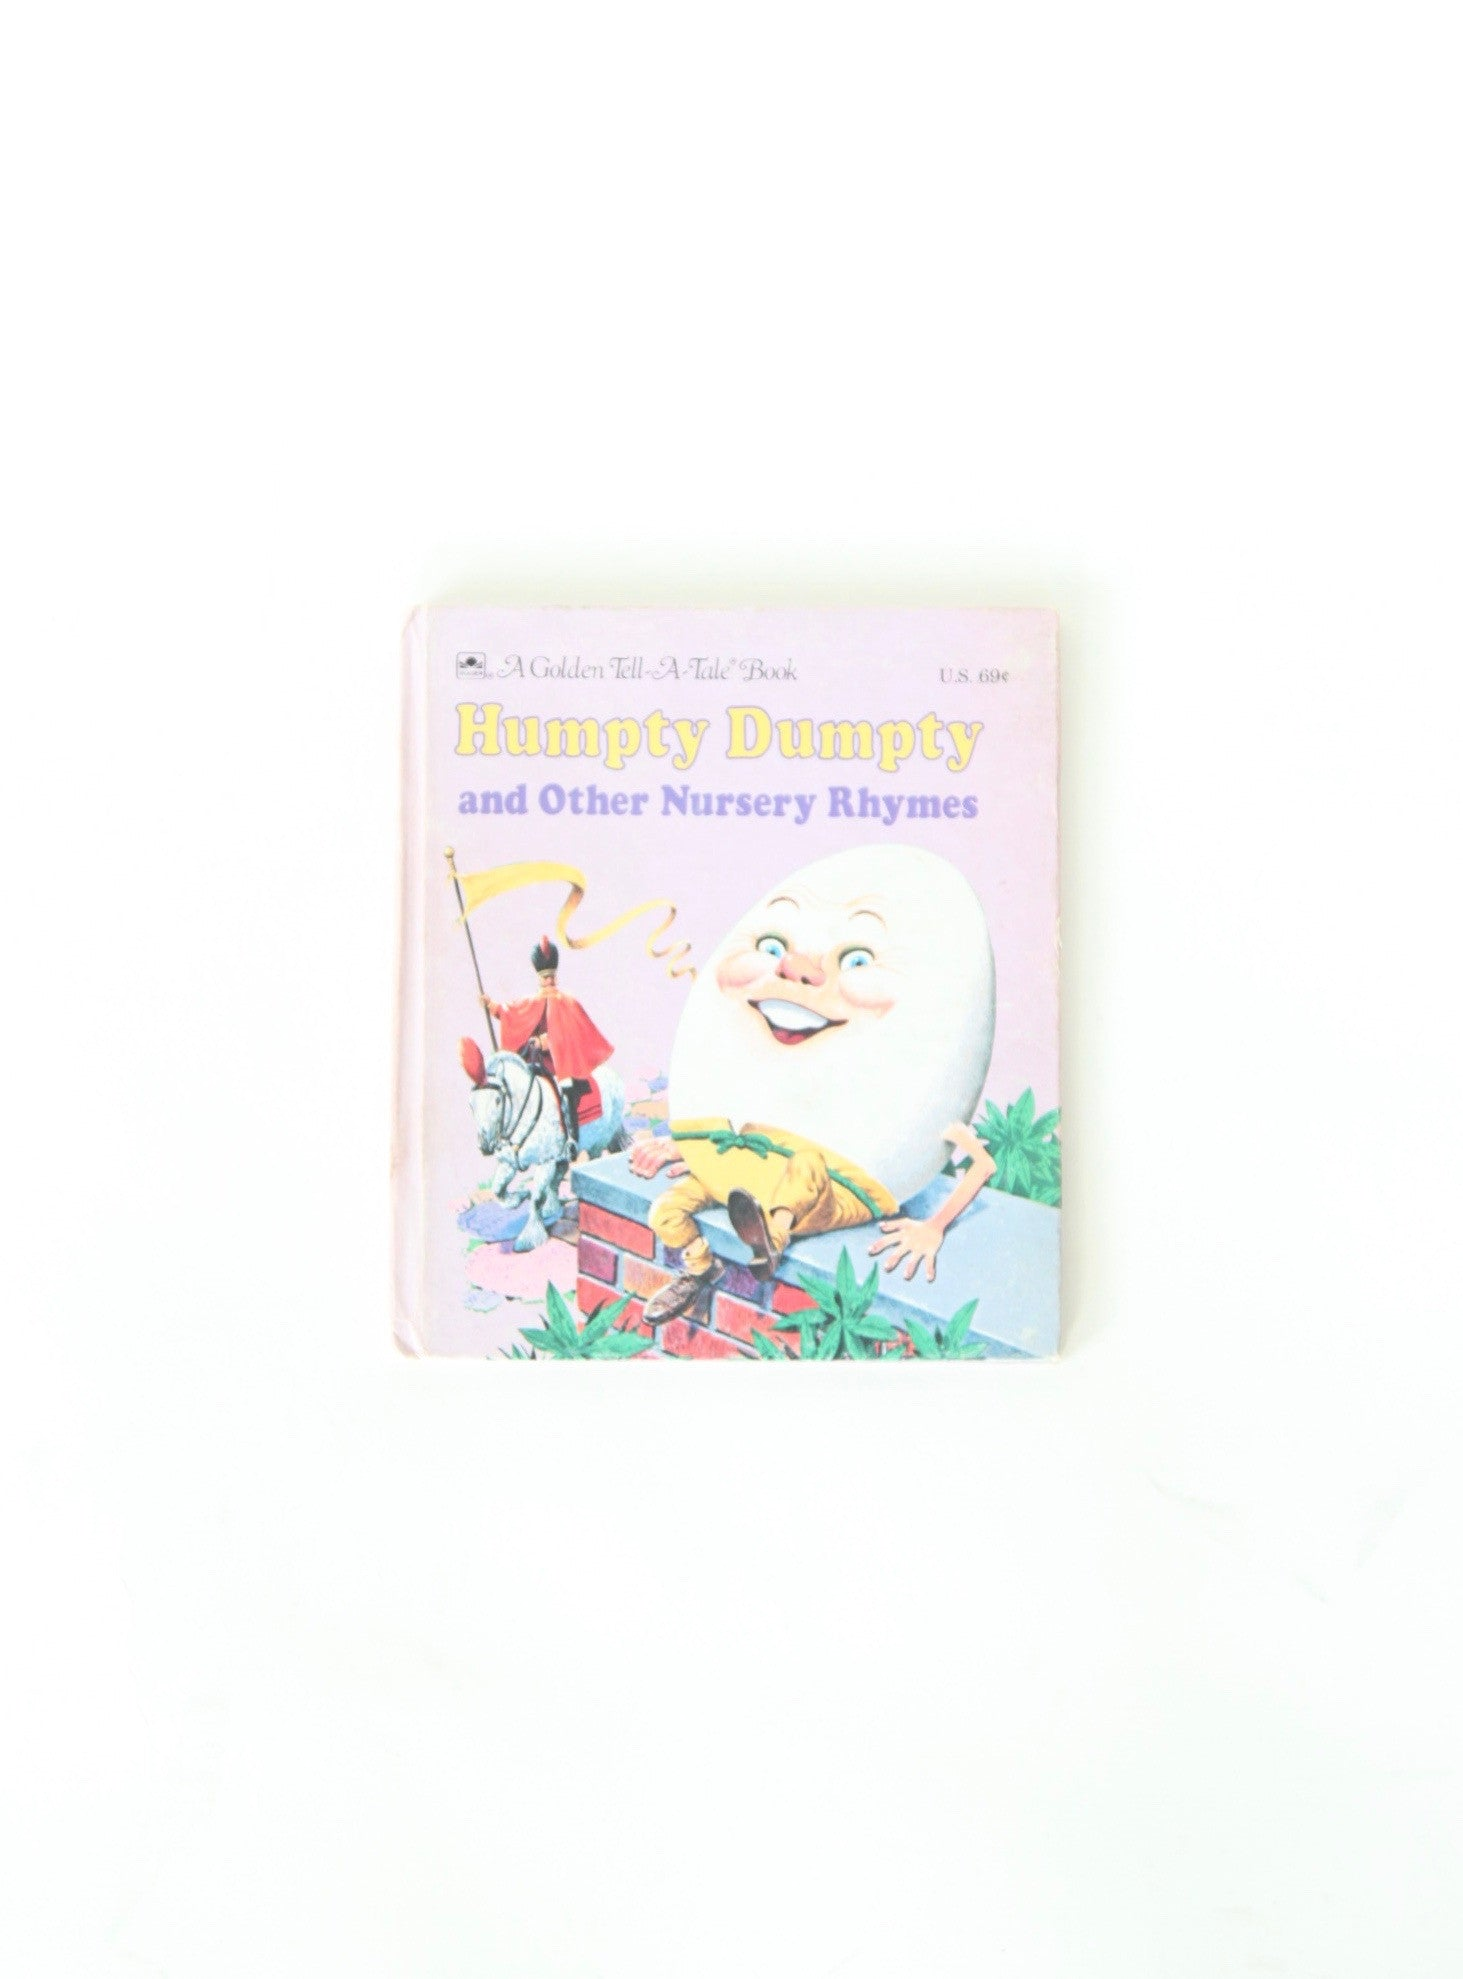 Vintage Children's Book Humpty Dumpty and Other Nursery Rhymes